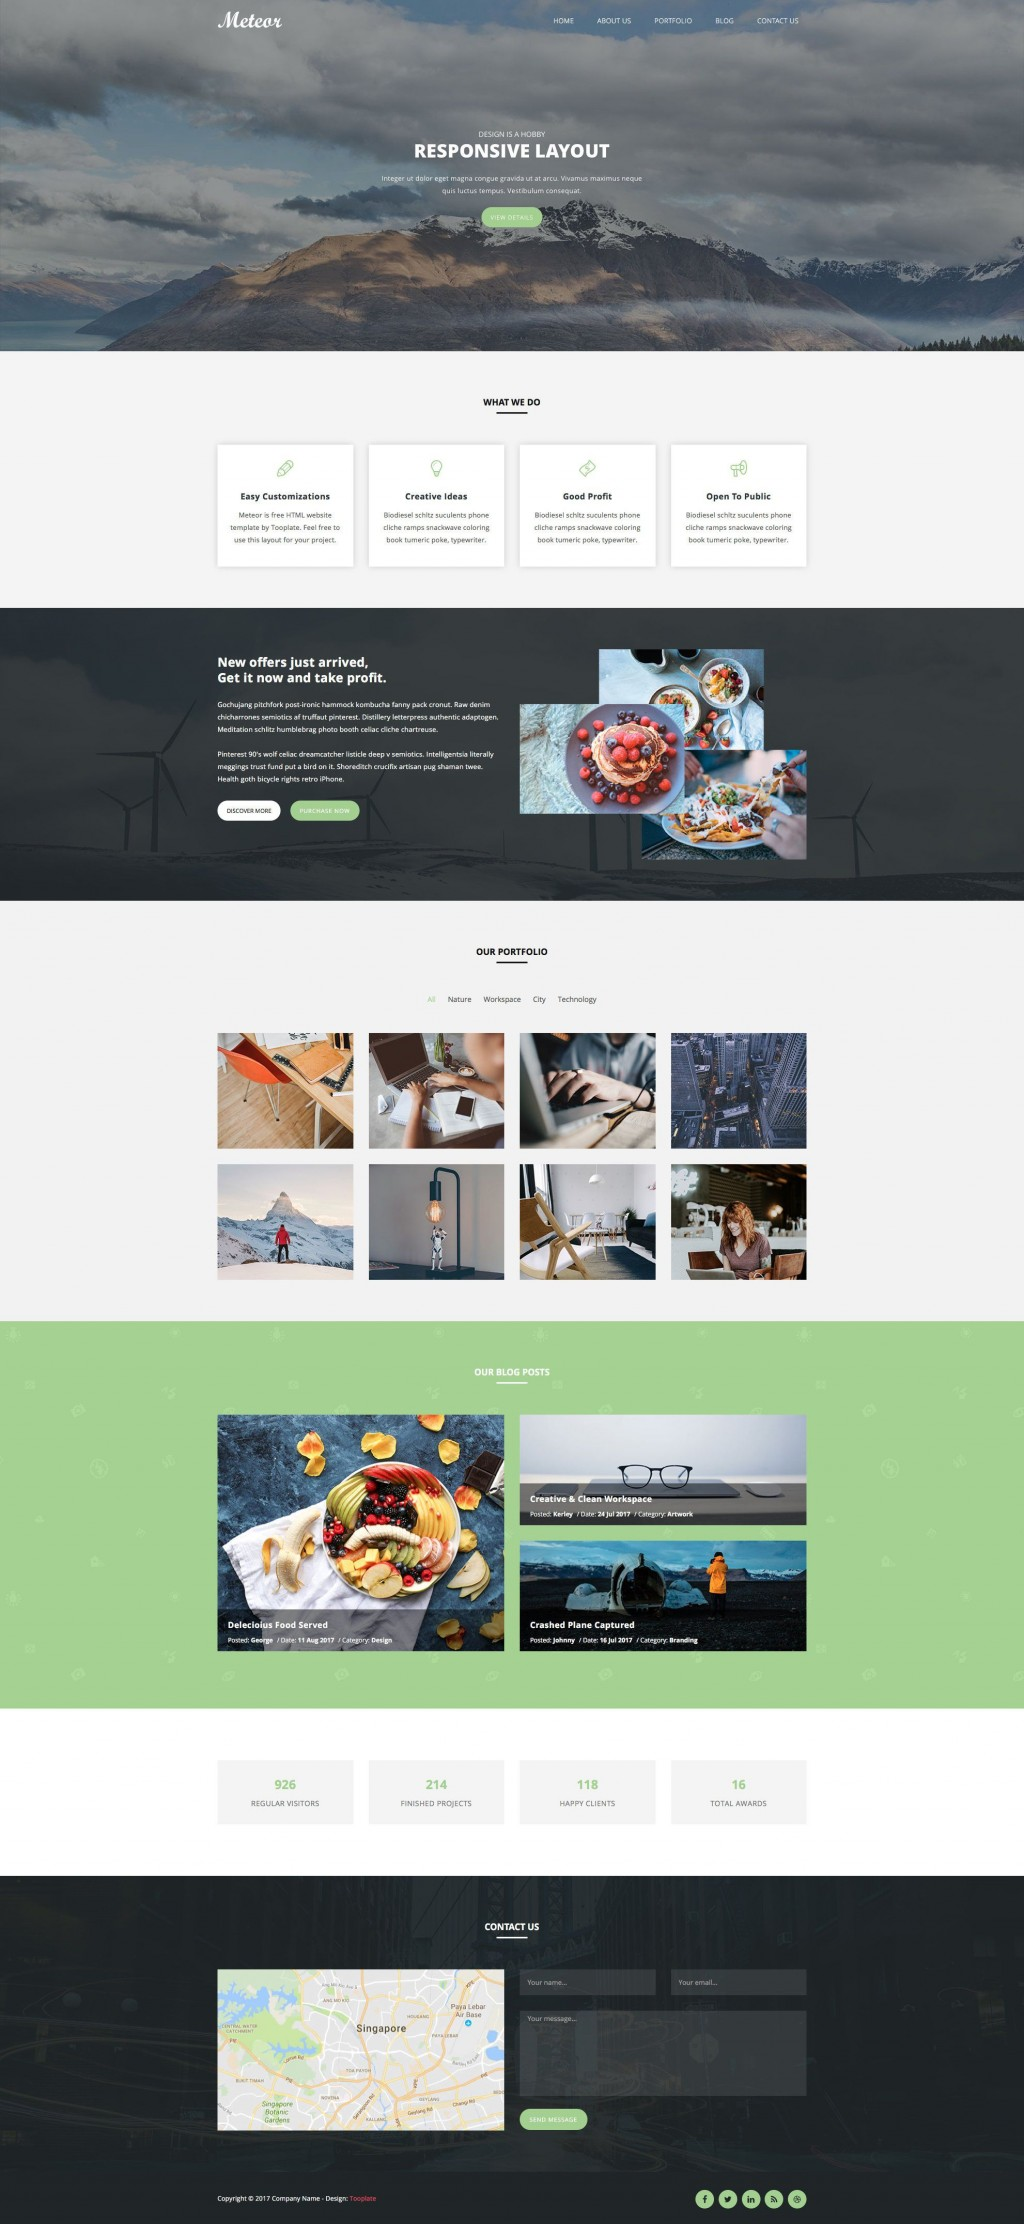 004 Unusual One Page Website Template Html5 Responsive Free Download Highest Clarity Large